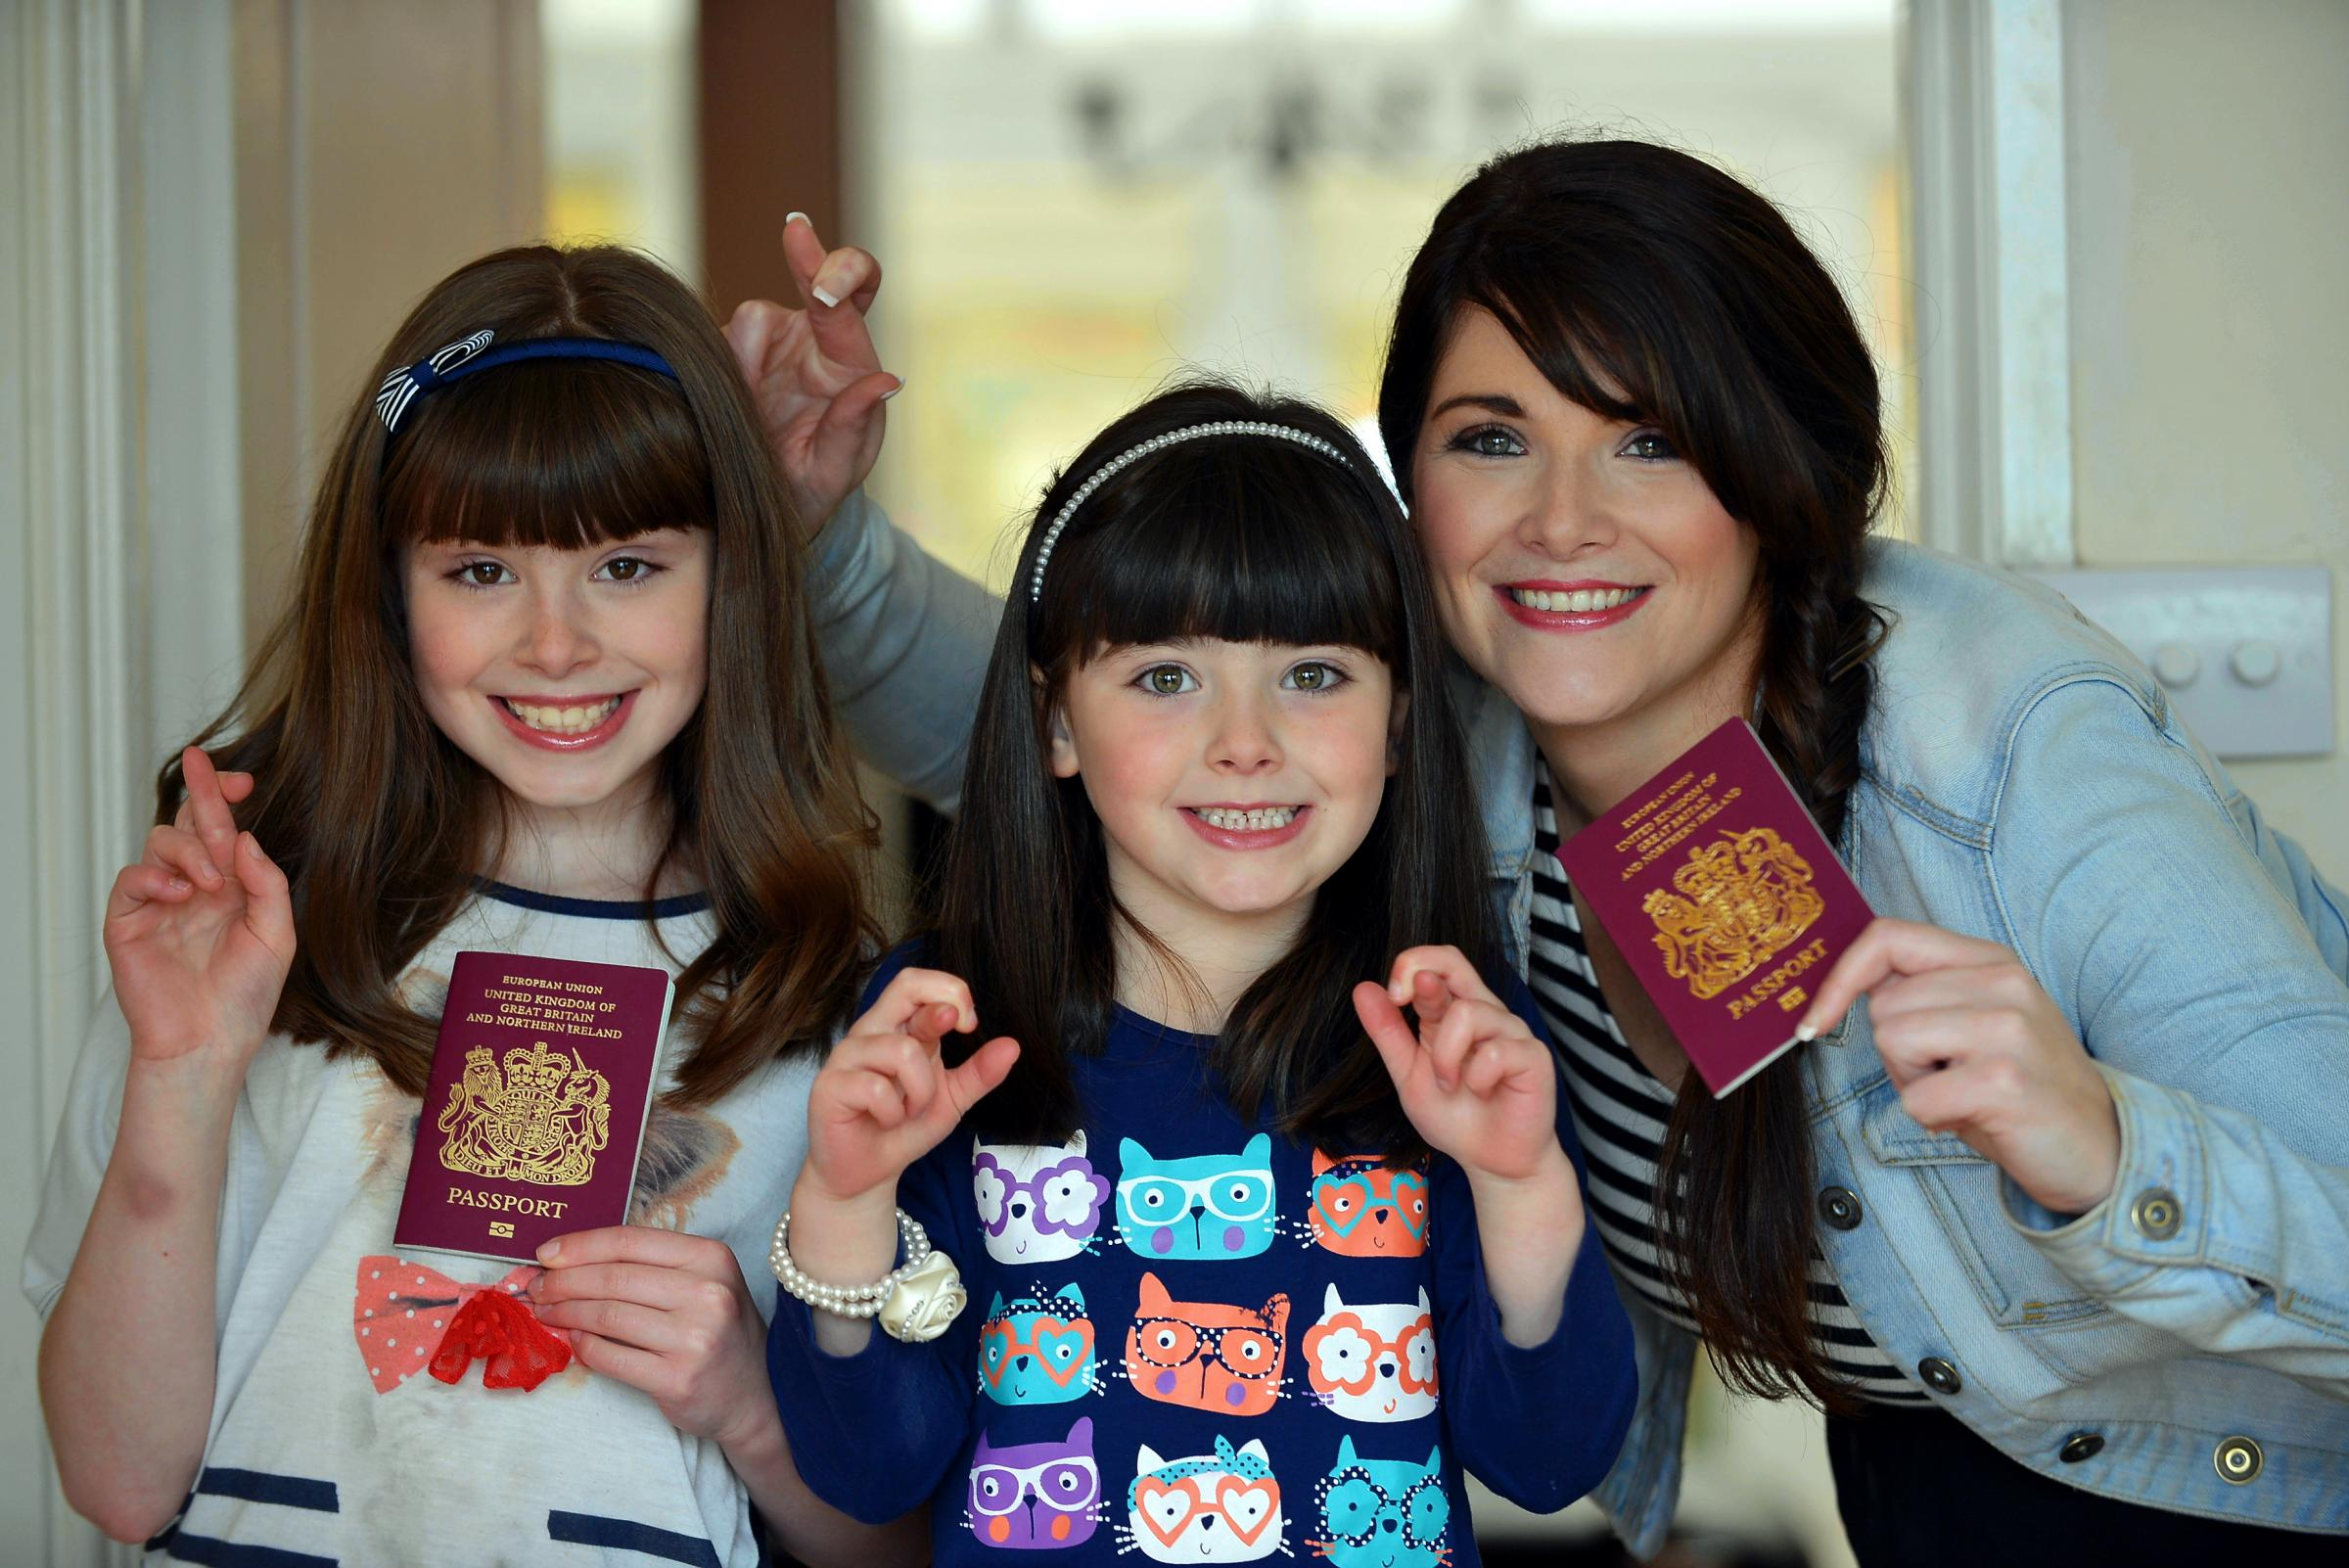 Mum Rachael Delaney with Keira (left) and Zara and their passports